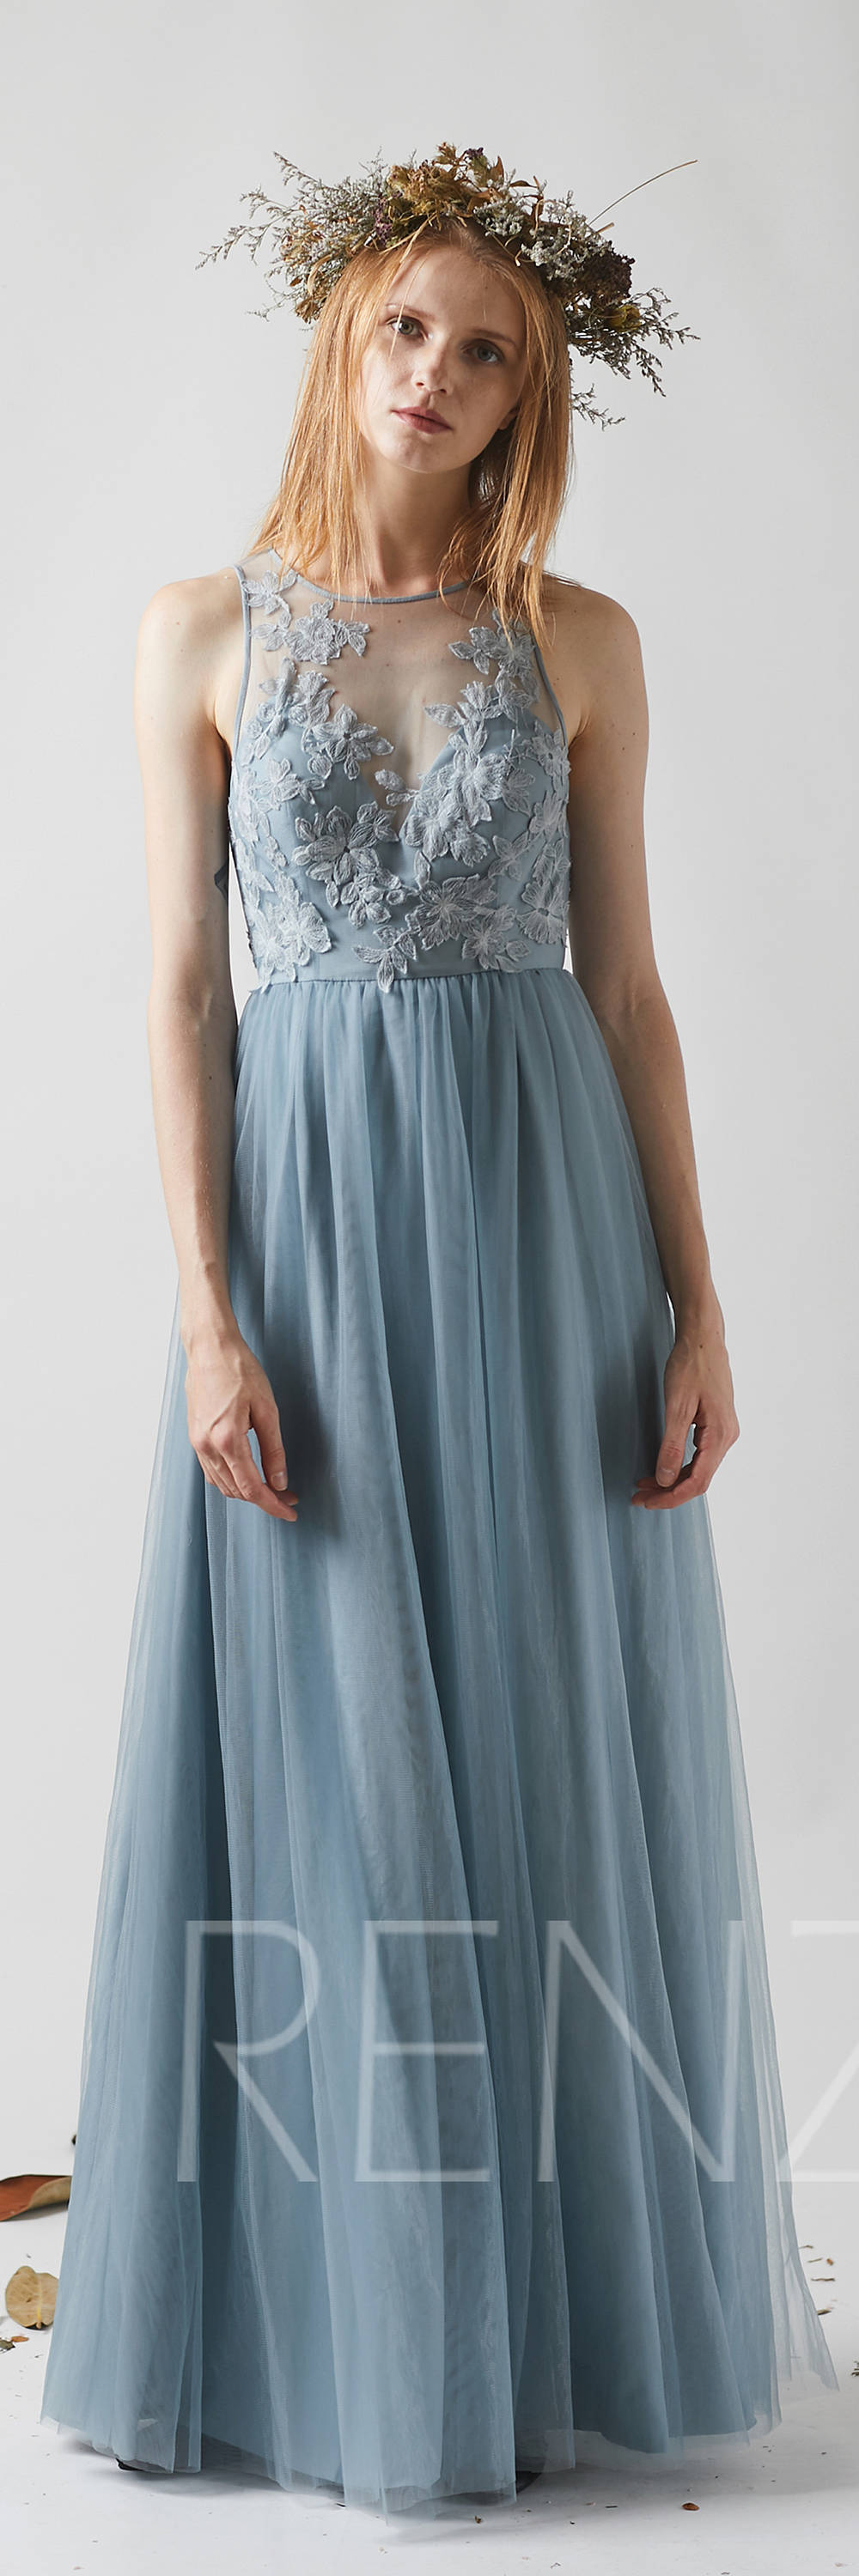 Dusty blue tulle bridesmaid dress sexy lace illusion wedding dress